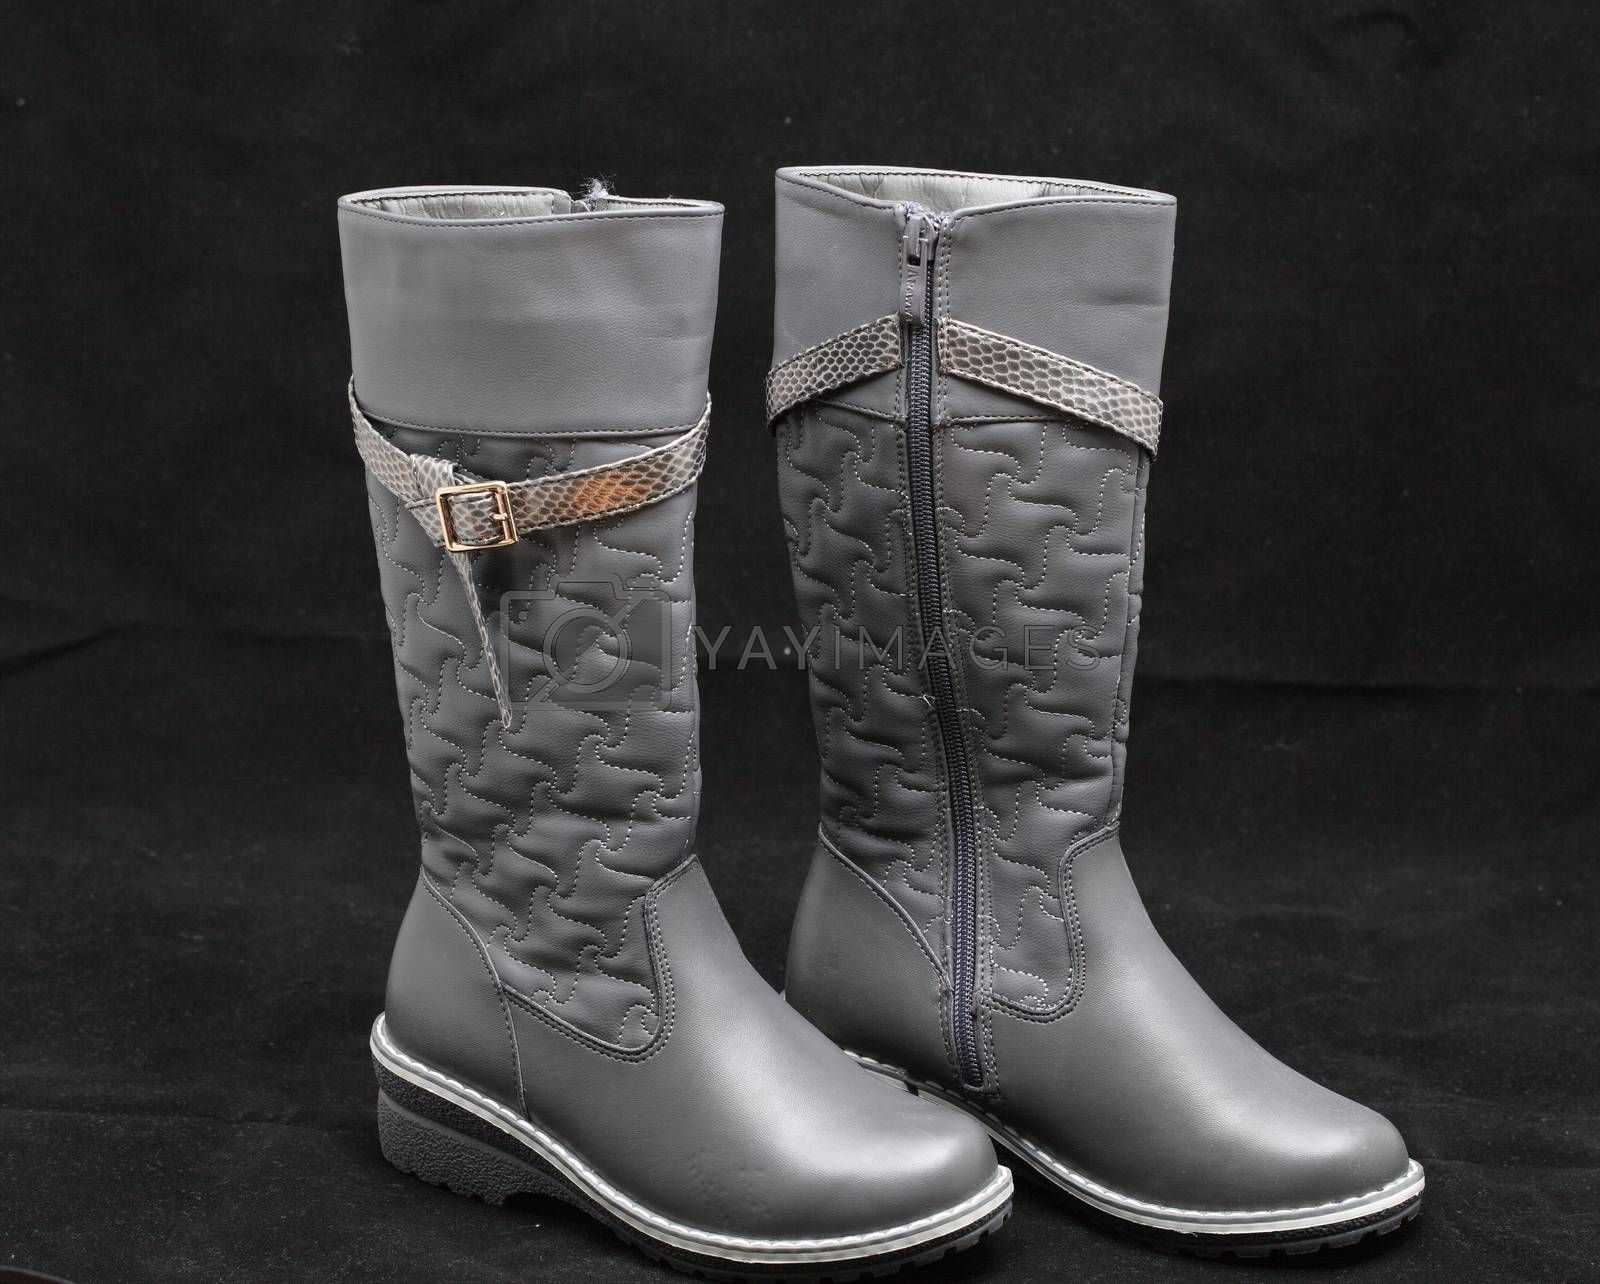 gray women's boots on black background